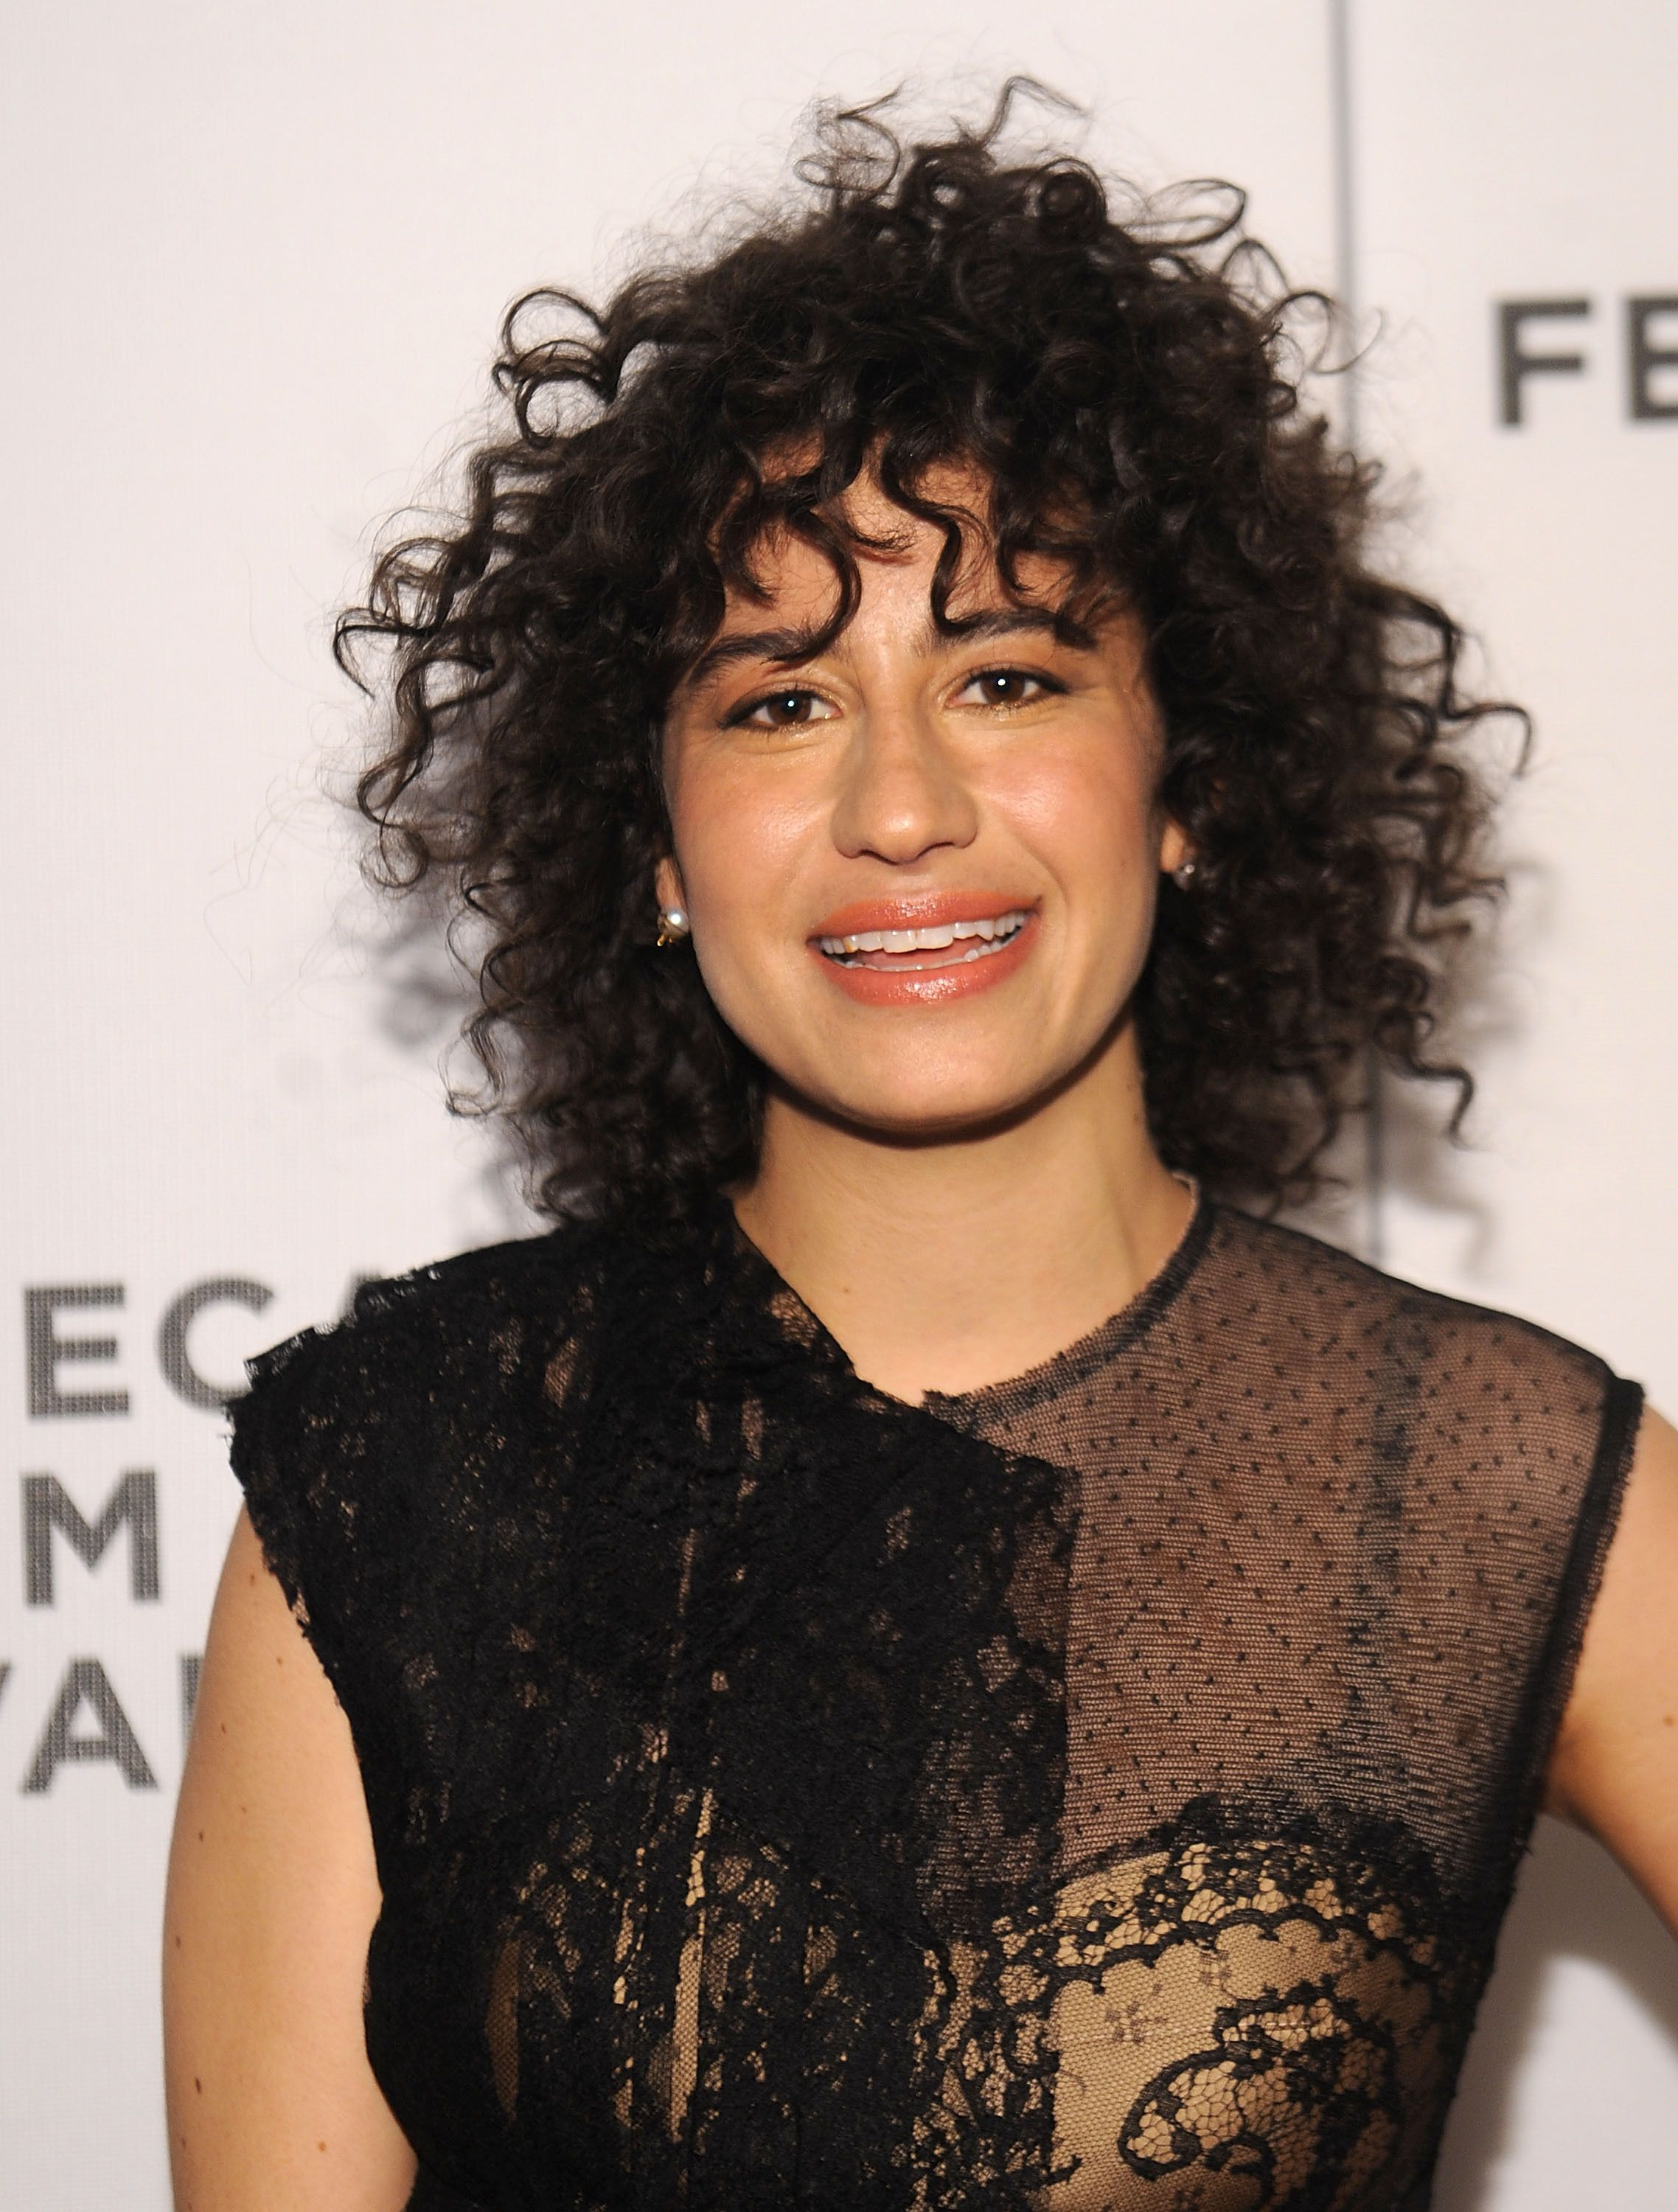 Communication on this topic: Vera Michelena, ilana-glazer/